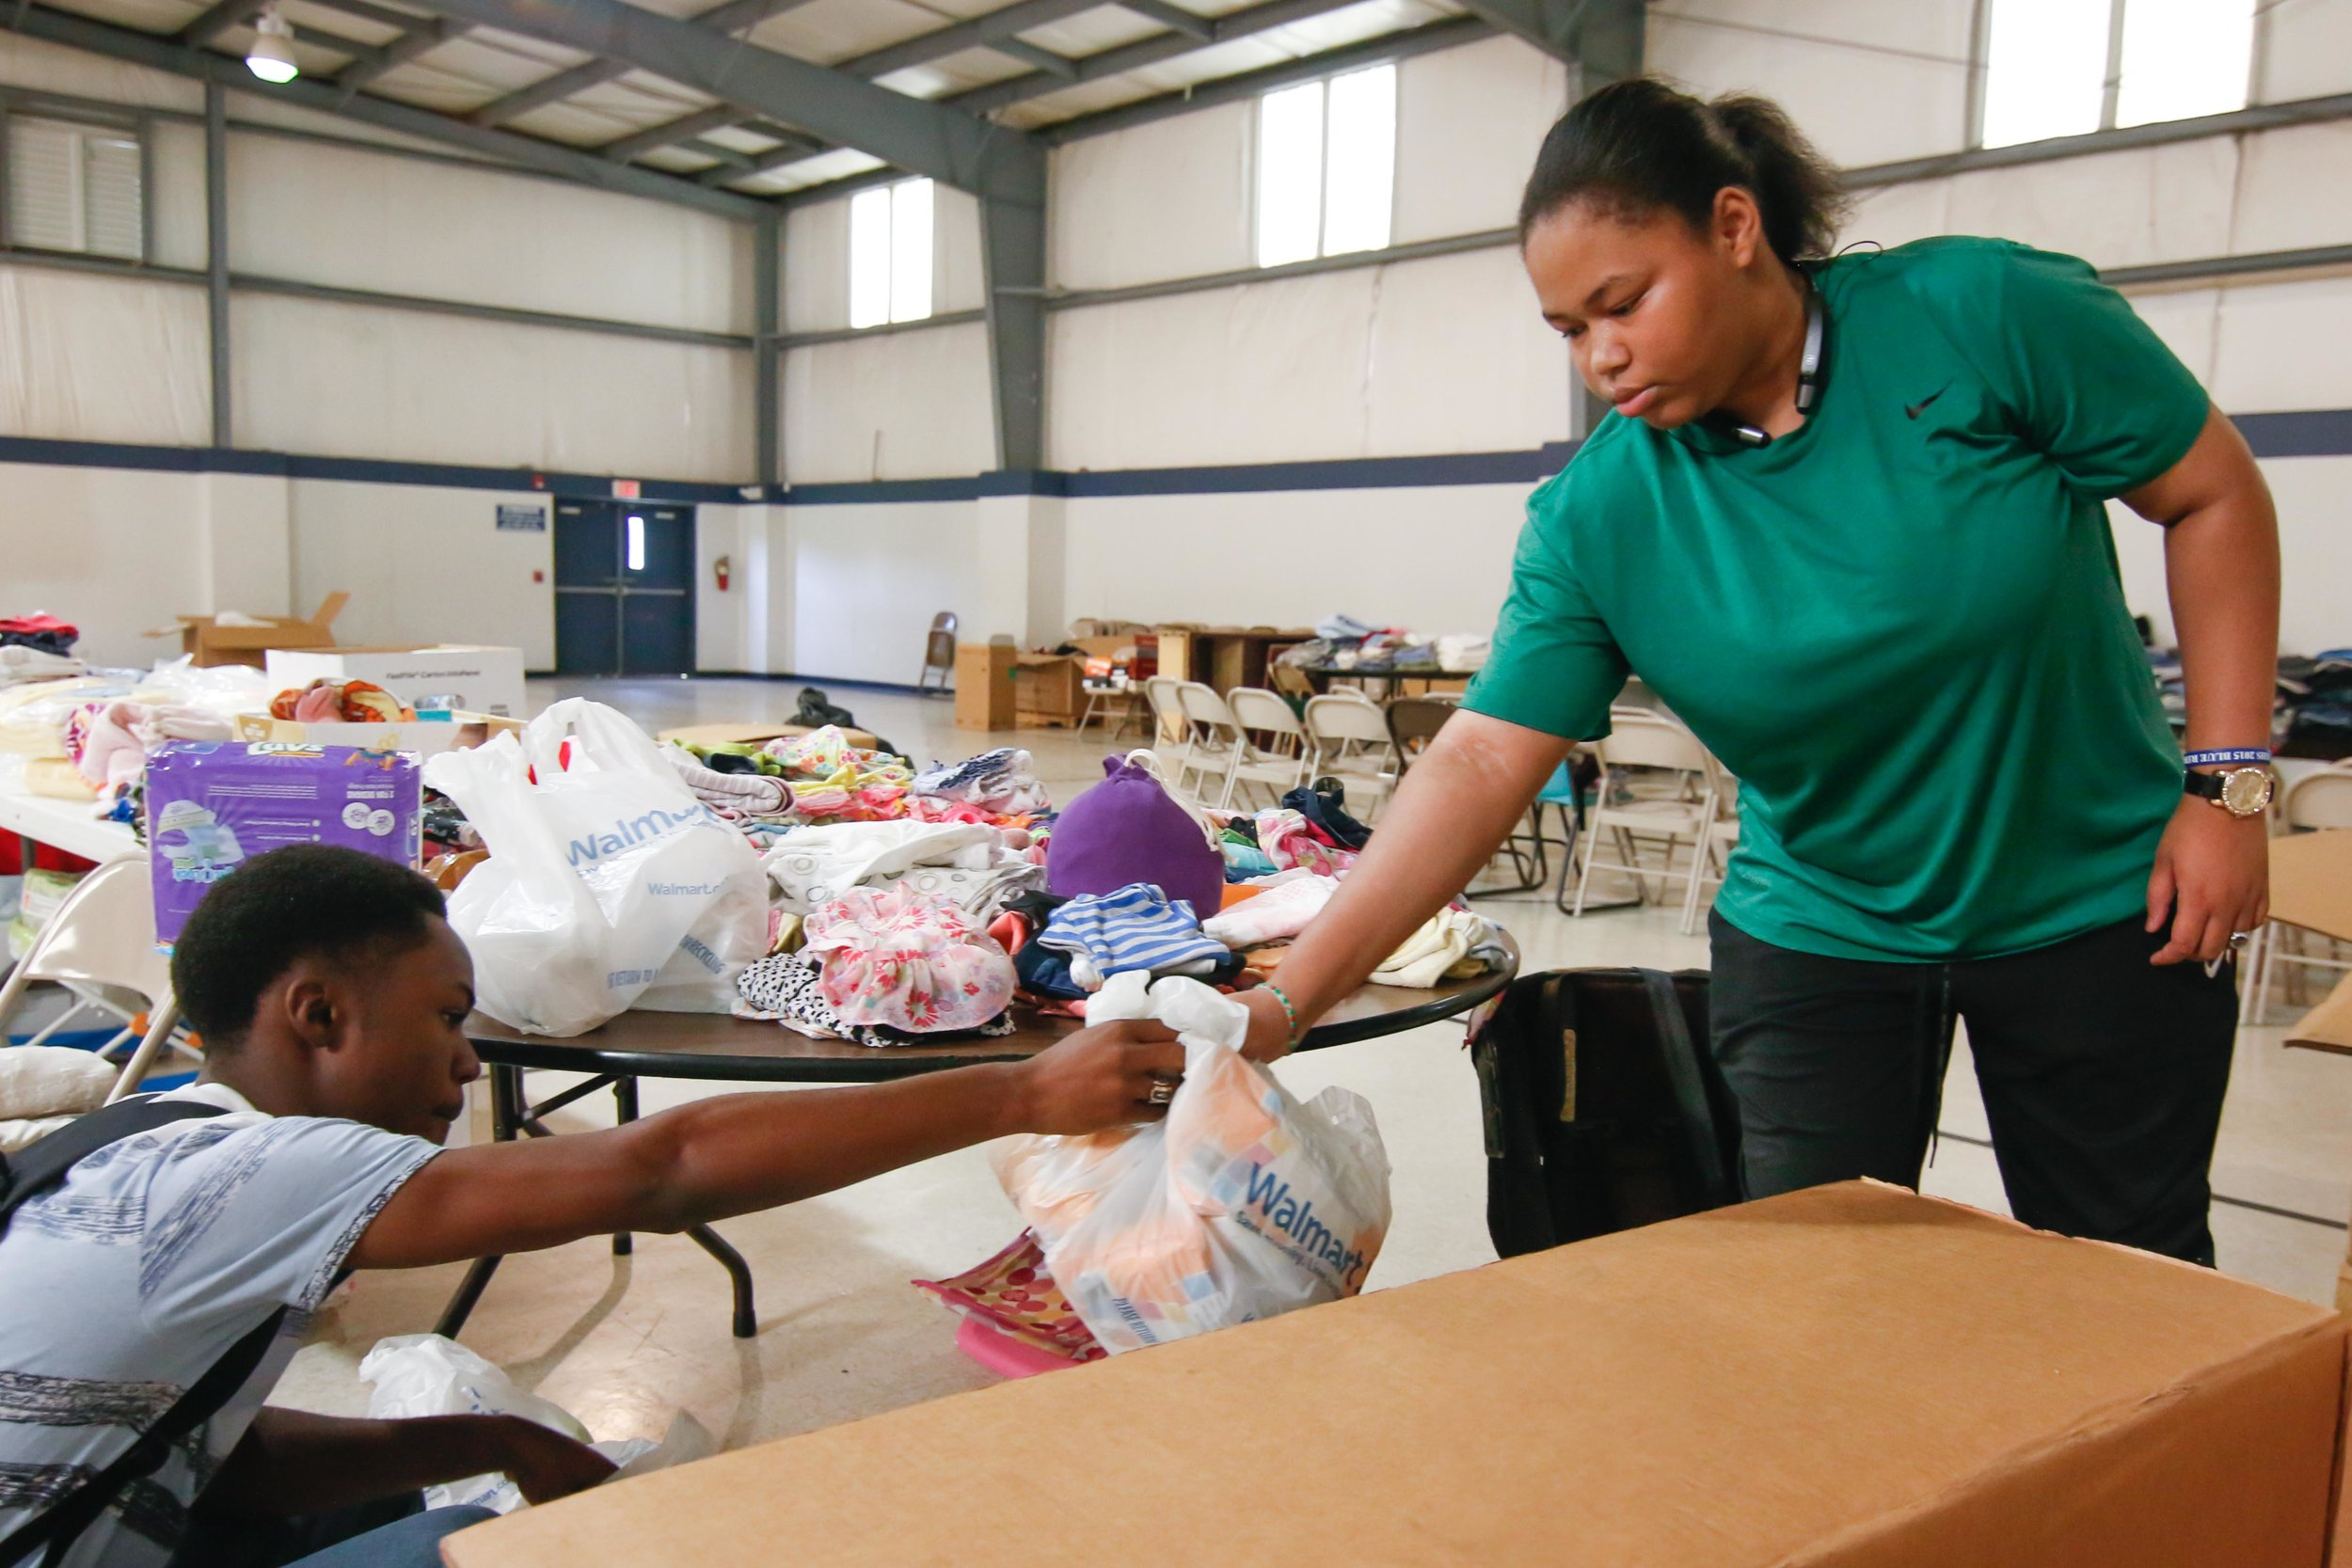 Rowan Ragen (left) and his friend Bri'ahn Fontenette pack a box full of donated supplies.     Photo by Stephen Ruf.